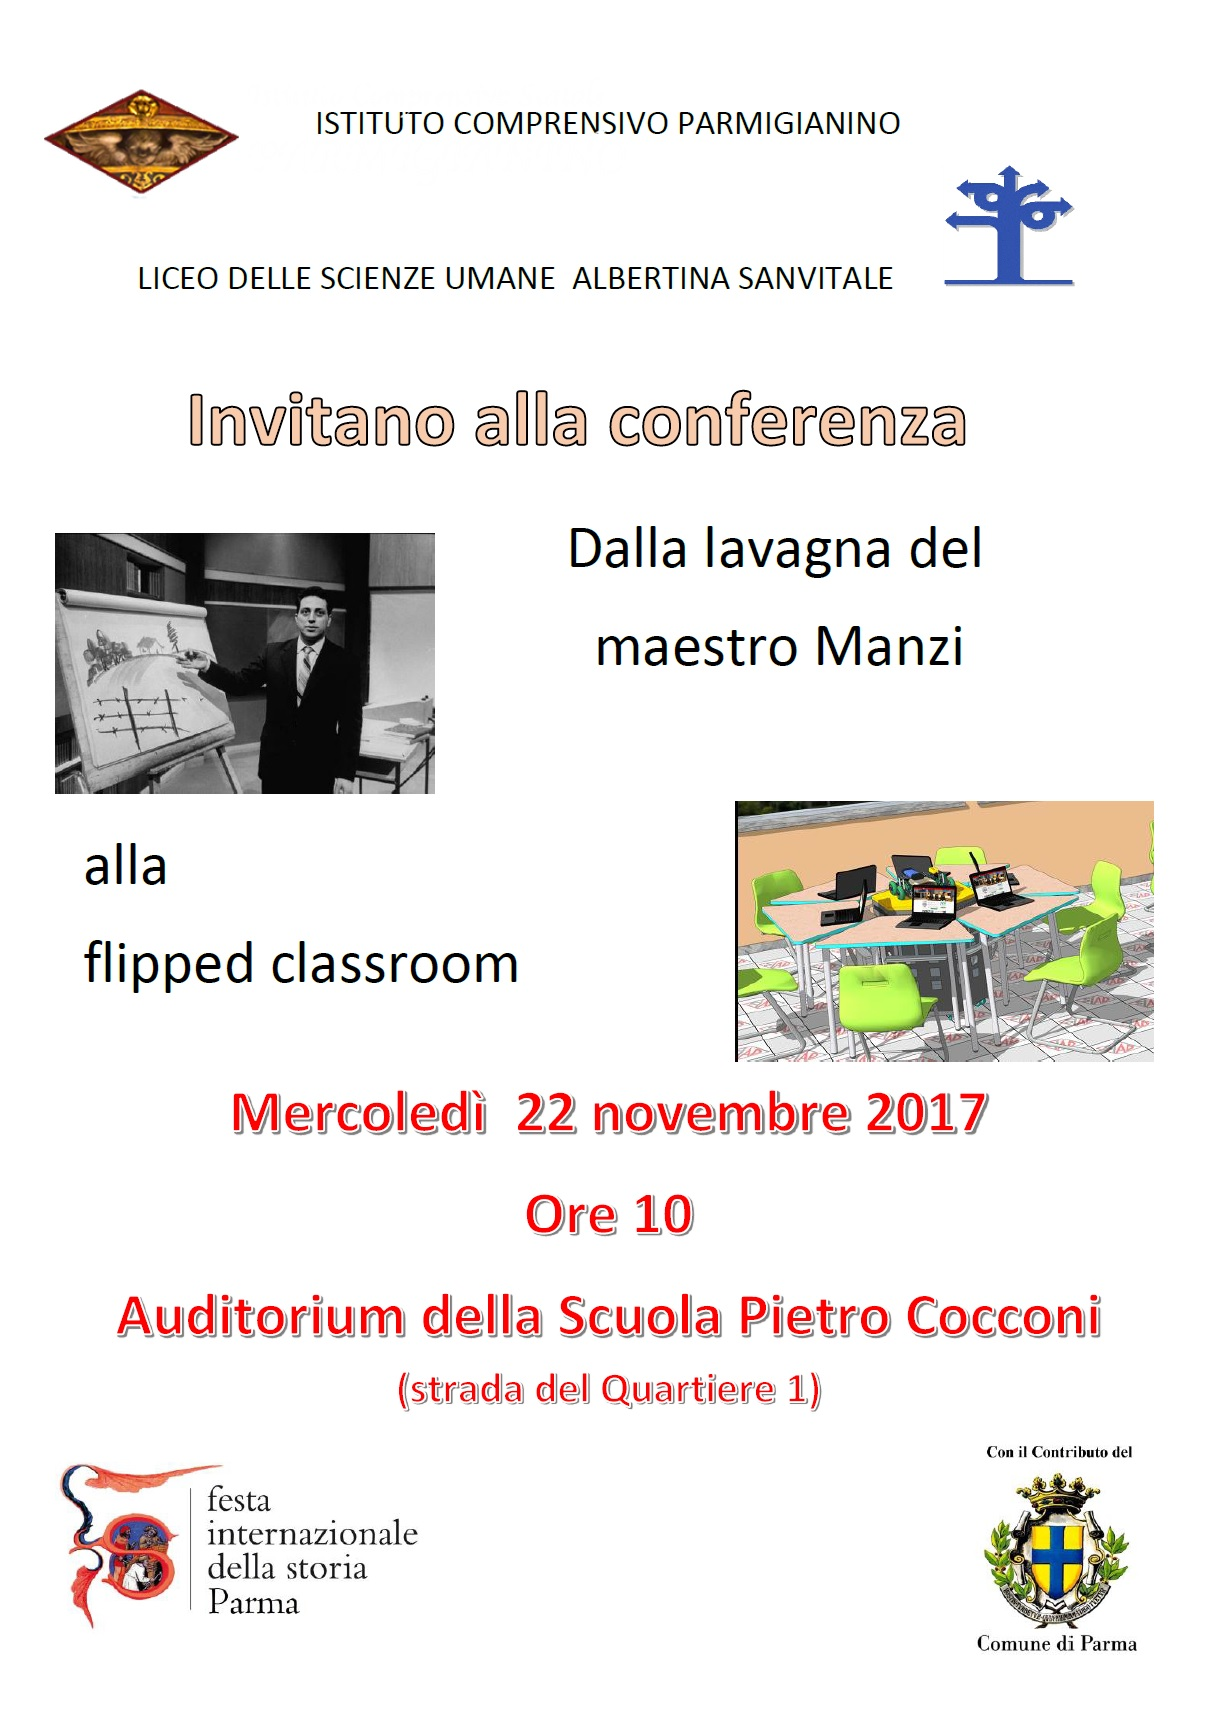 Conferenza Flipped